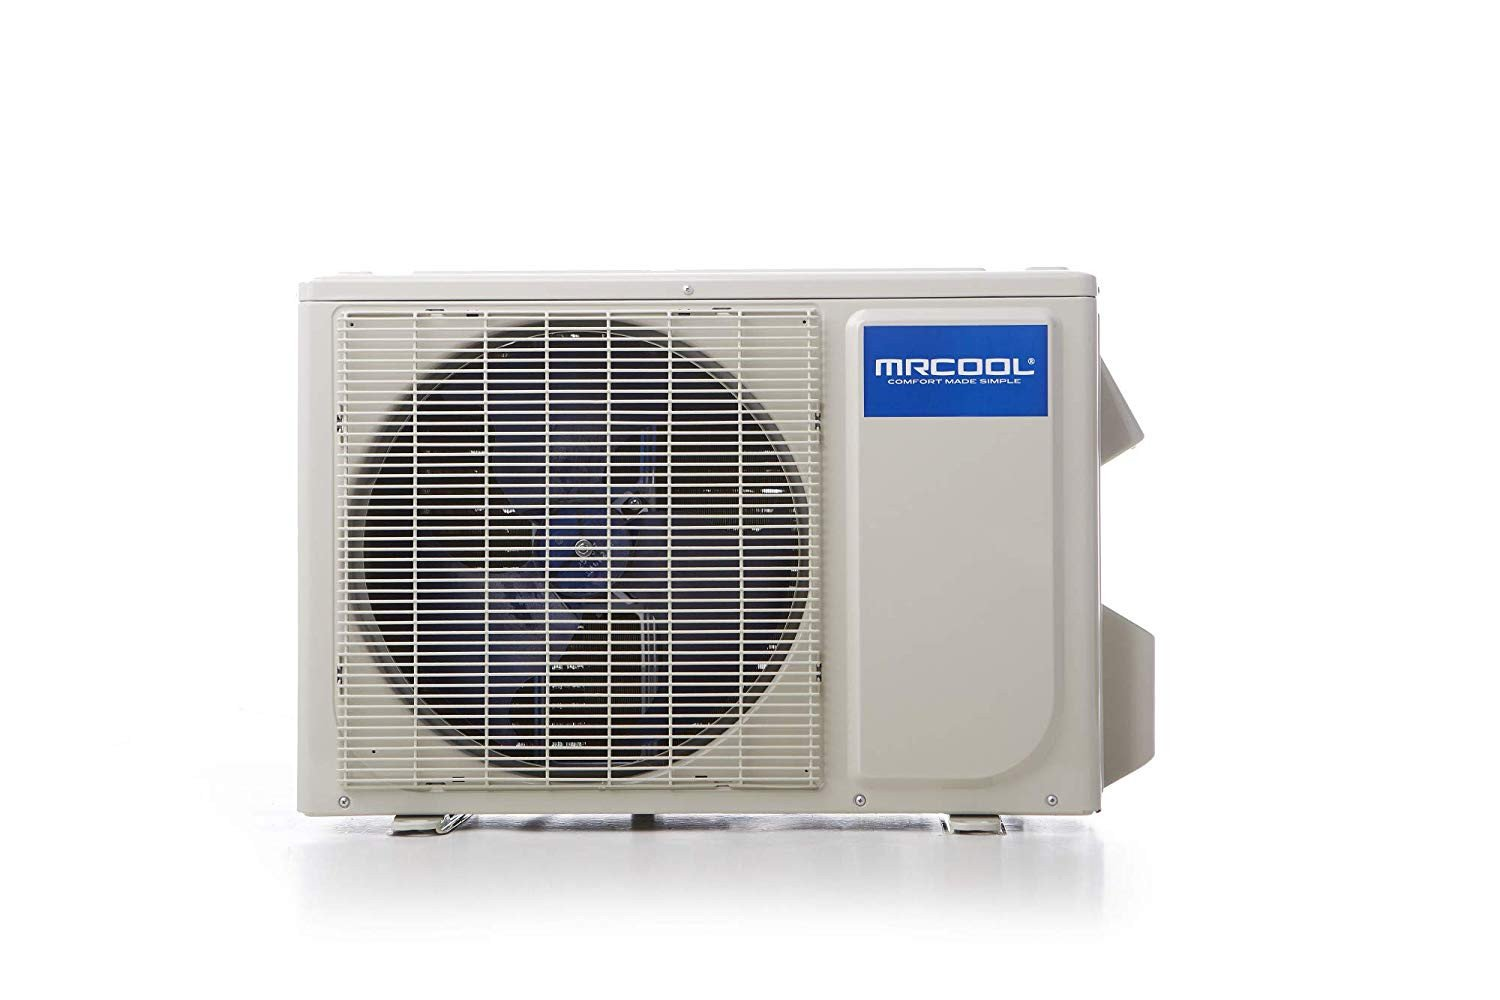 Silent Fan for Bedroom Inspirational Product Reviews Archives Refrigerant Hq